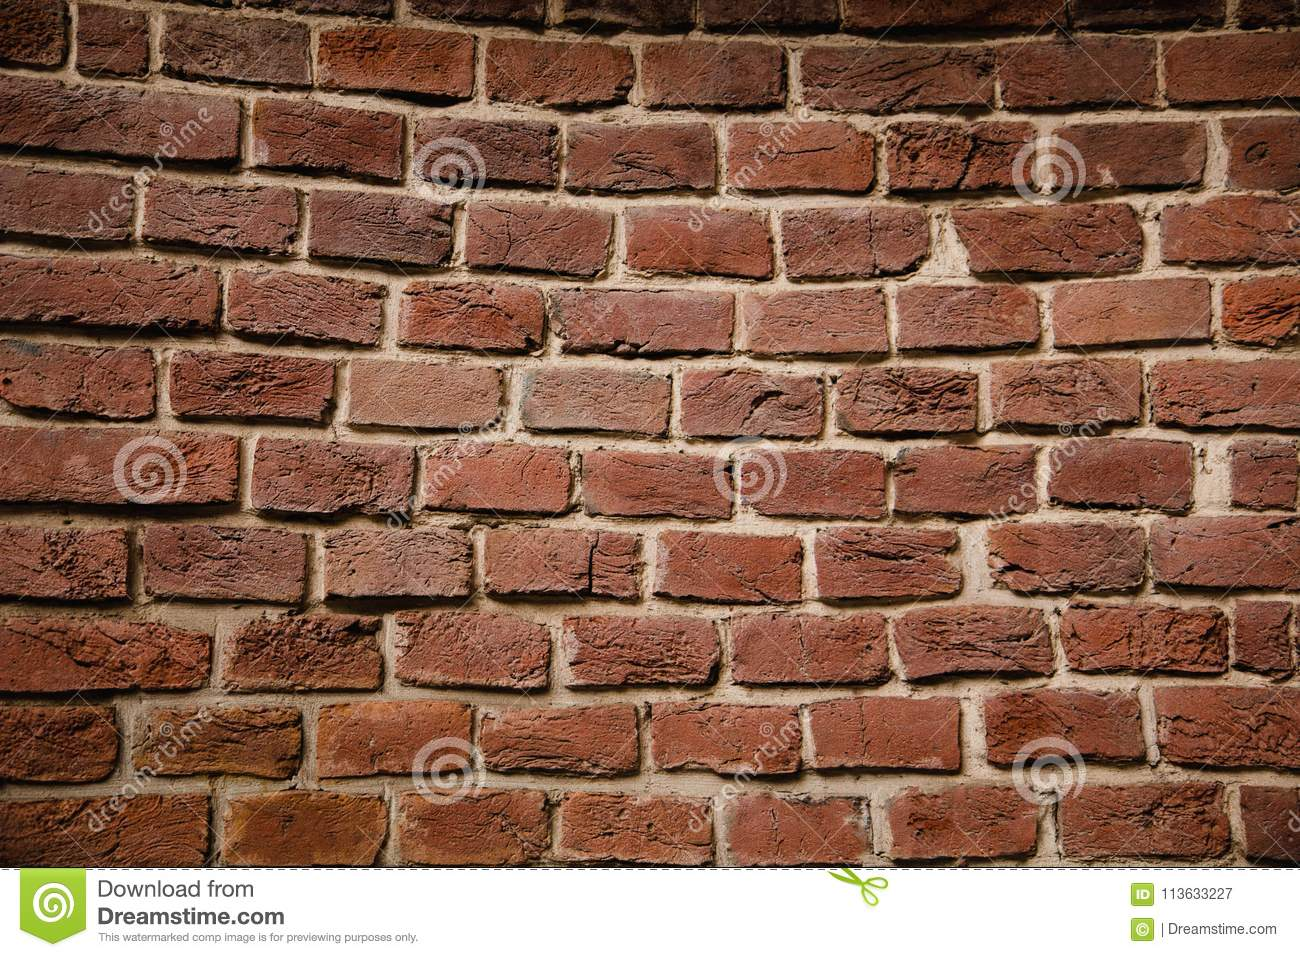 Old brick wall. Background of old vintage brick wall.